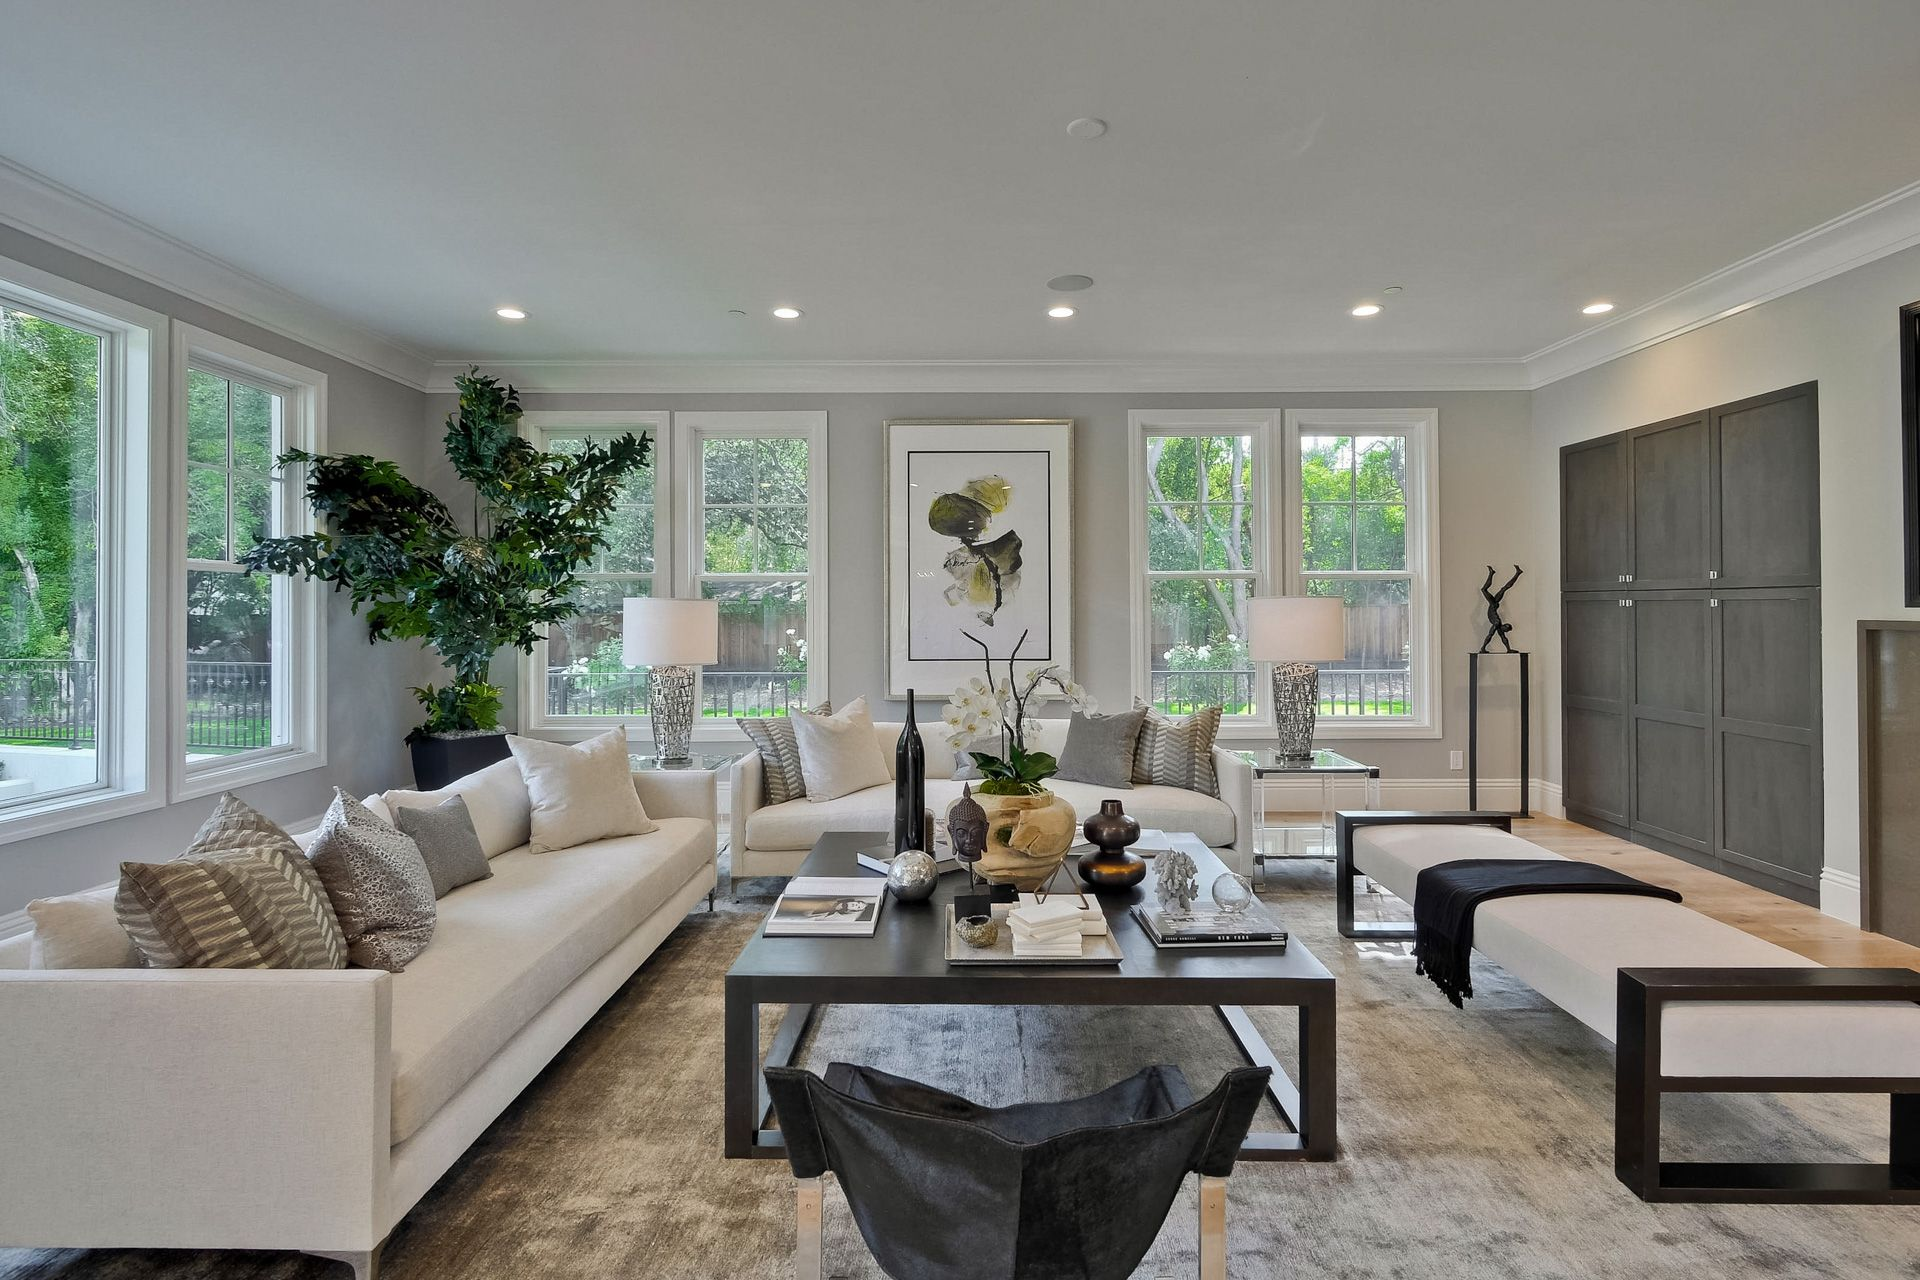 Meridith Baer Home Staging Liked Homescapes Www Sd Contemporarylivingroom